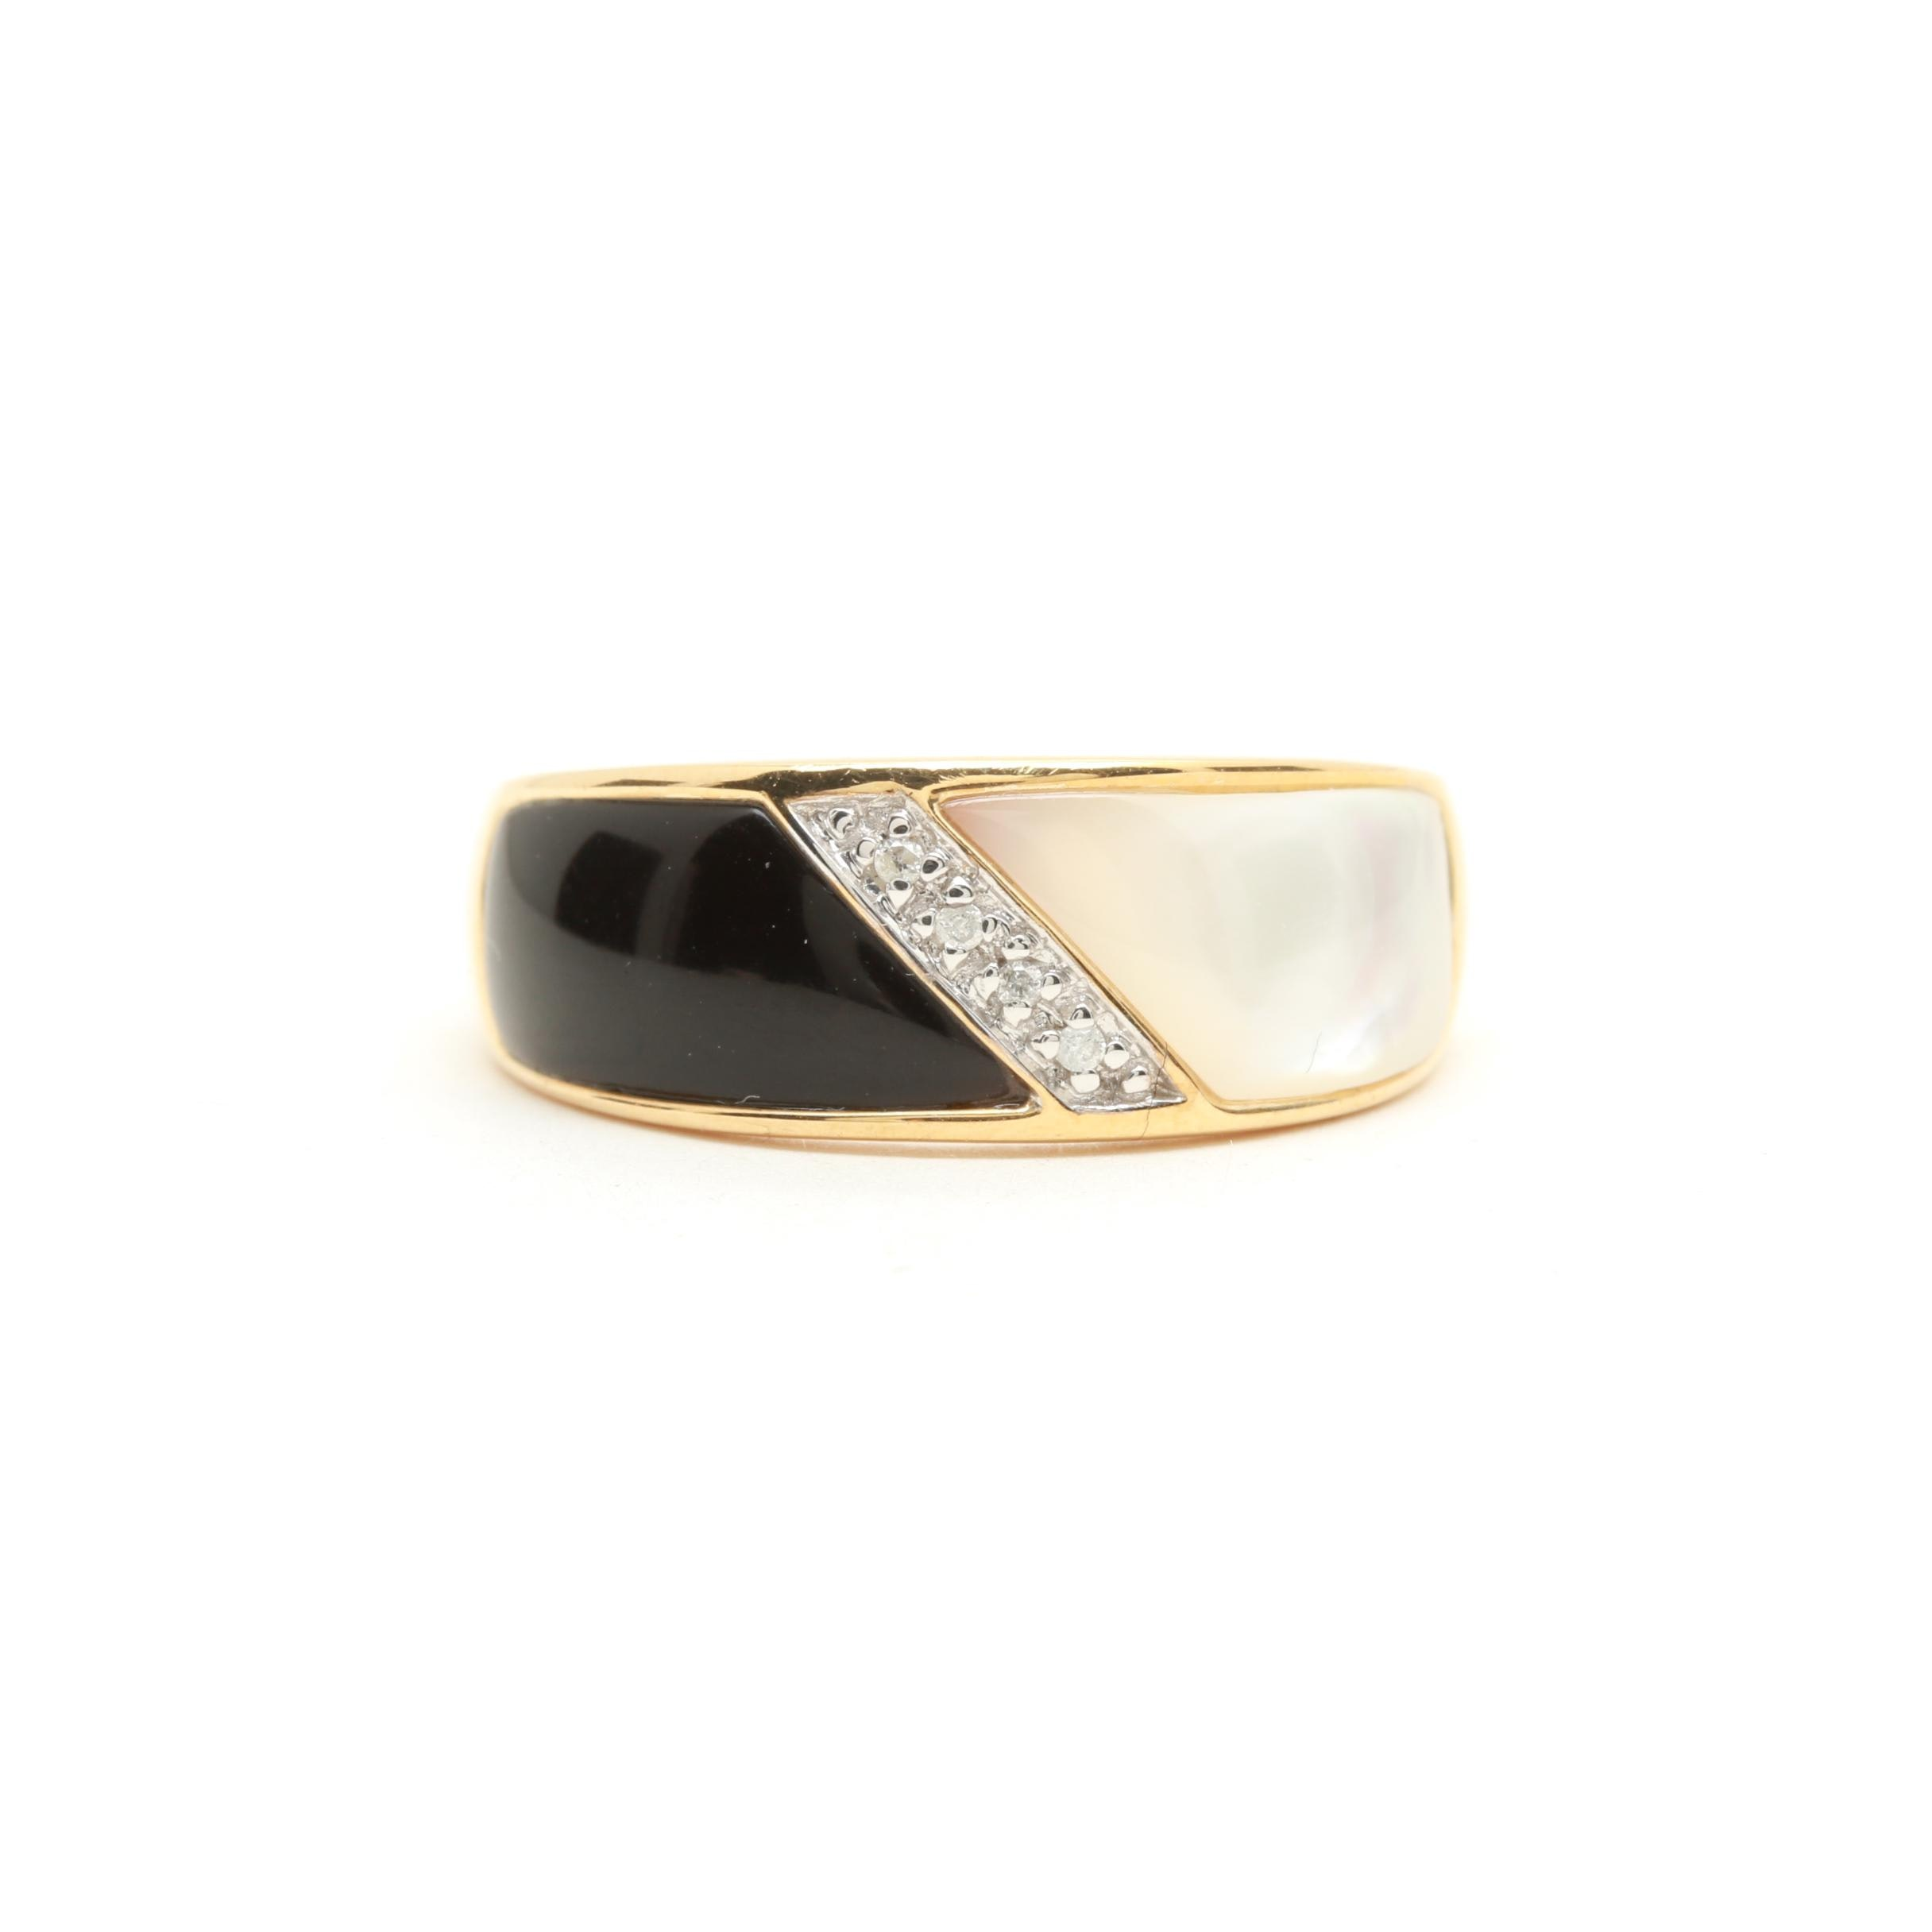 10K Yellow Gold Mother of Pearl, Imitation Onyx, and Diamond Ring